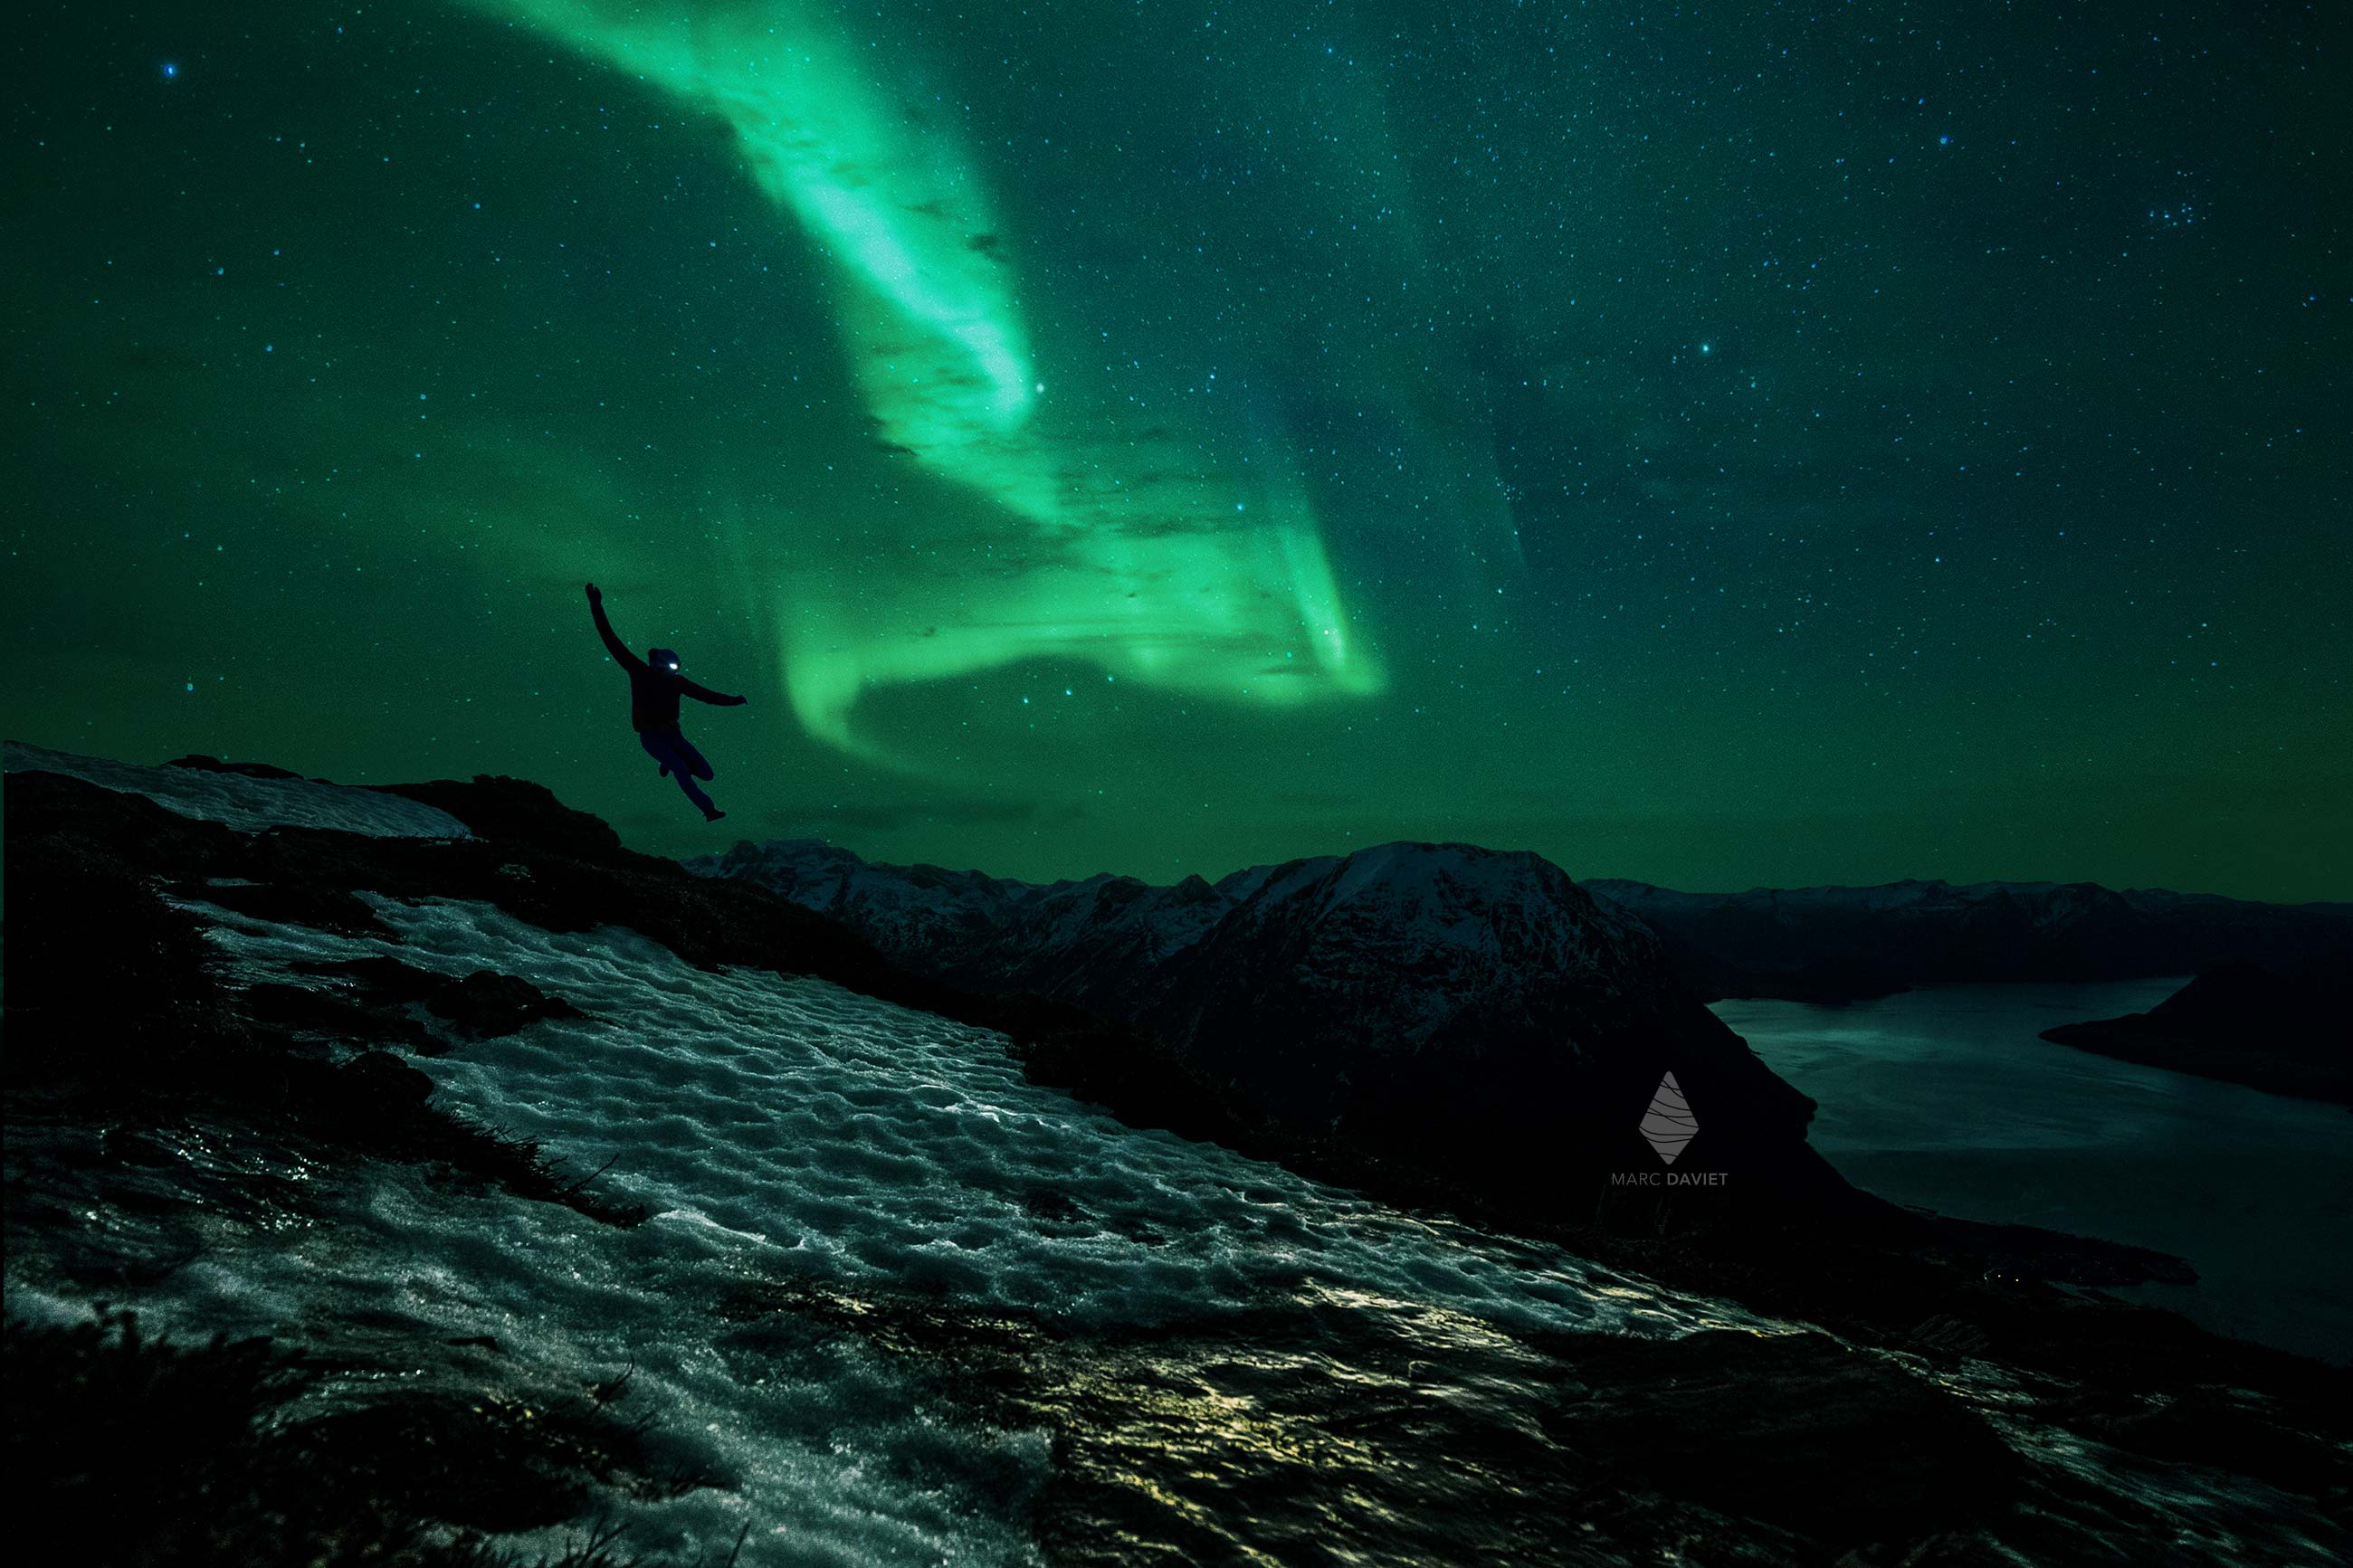 Kilian Jornet under the Aurora borealis